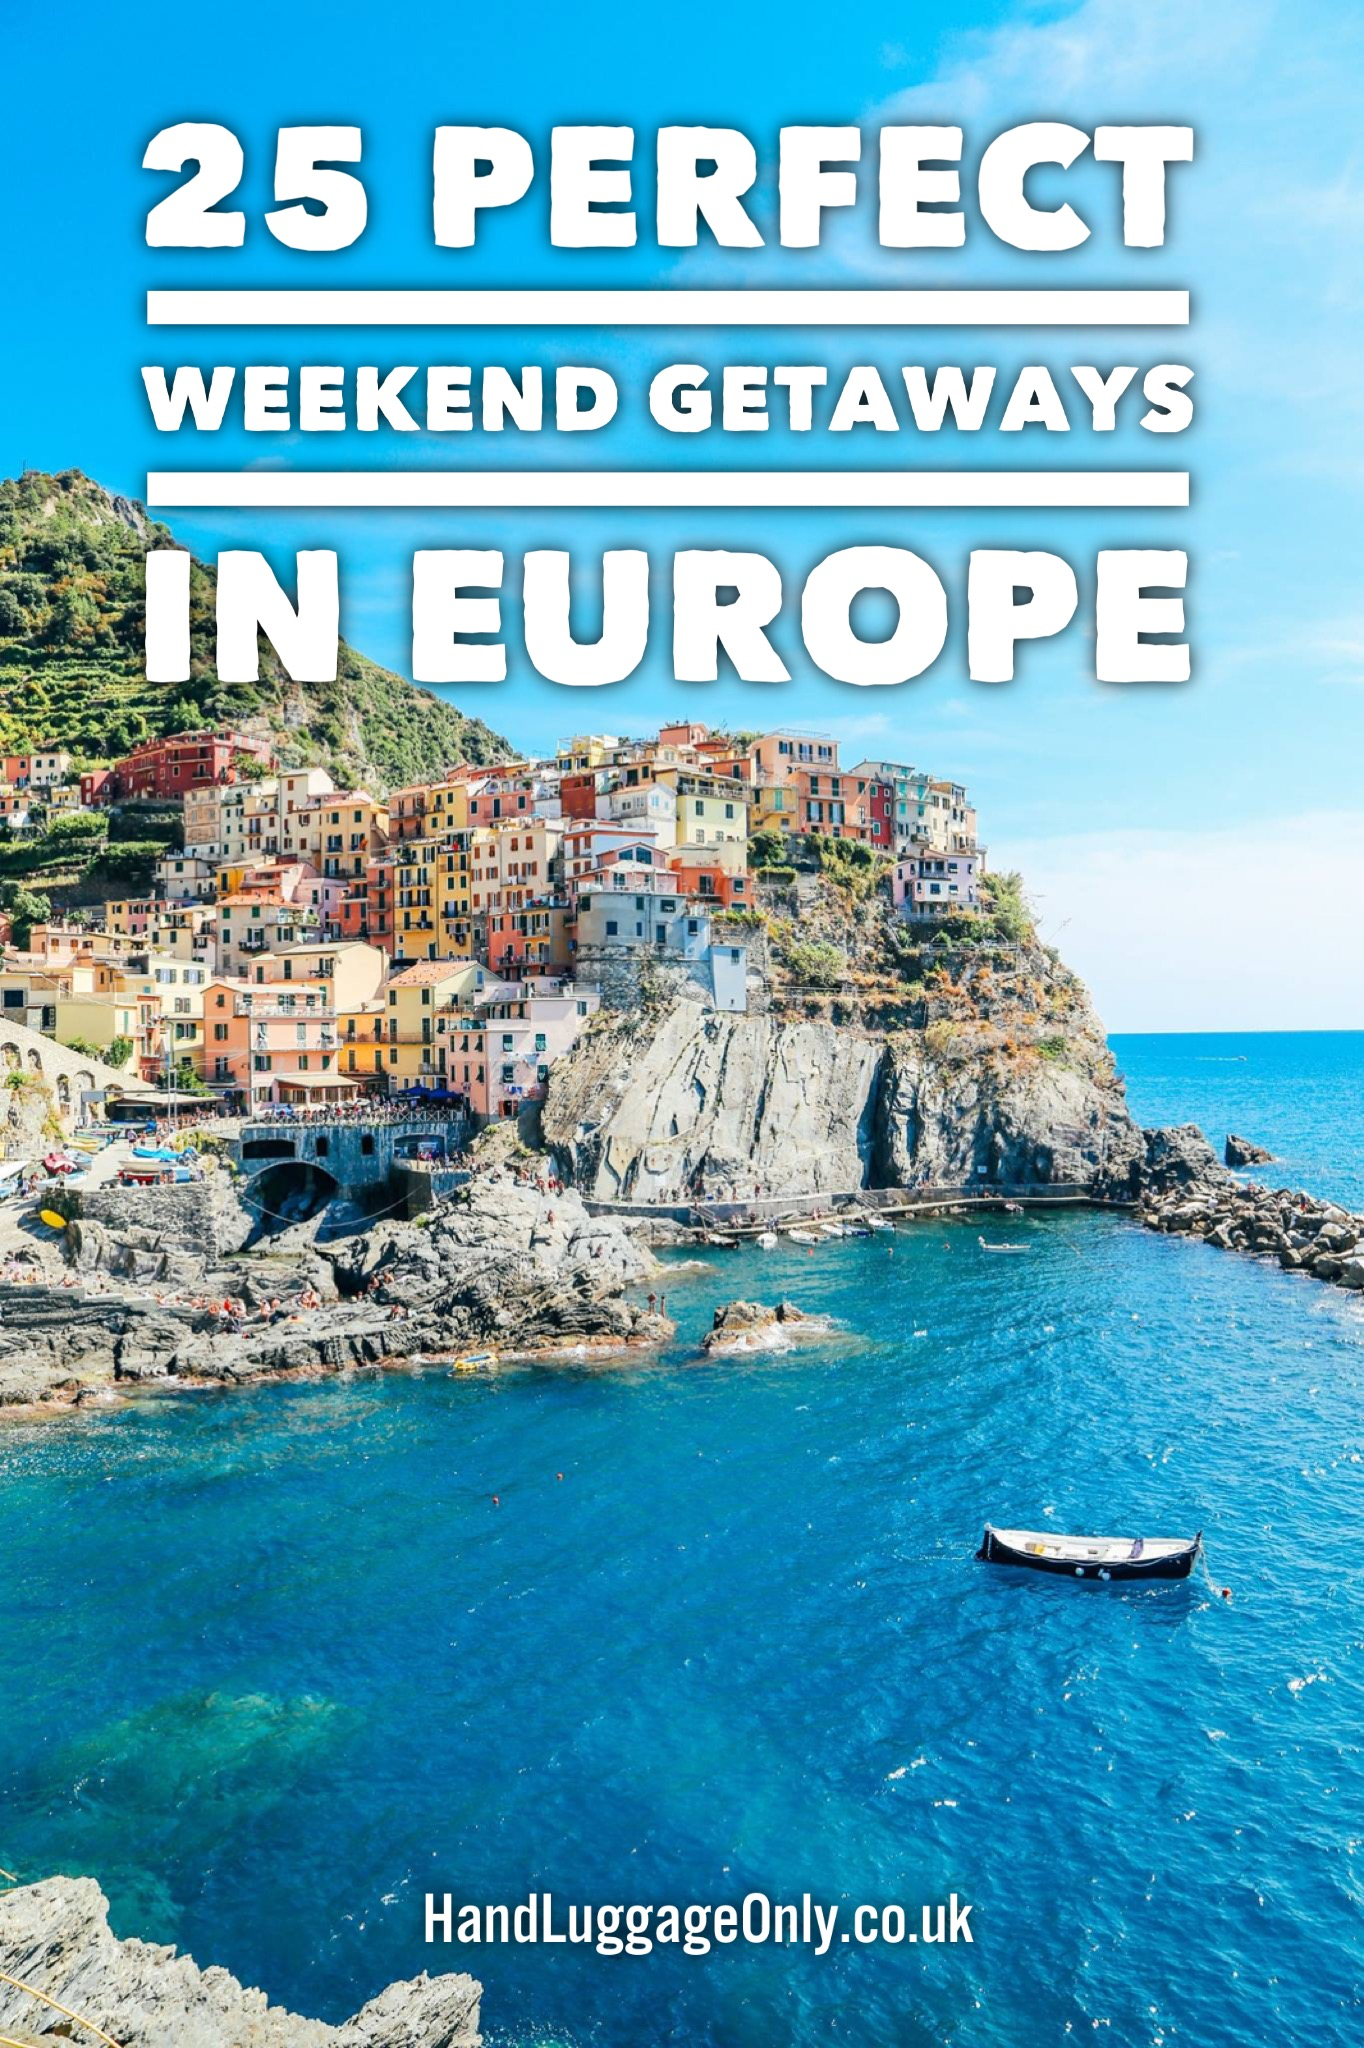 25 Perfect Weekend Getaways In Europe